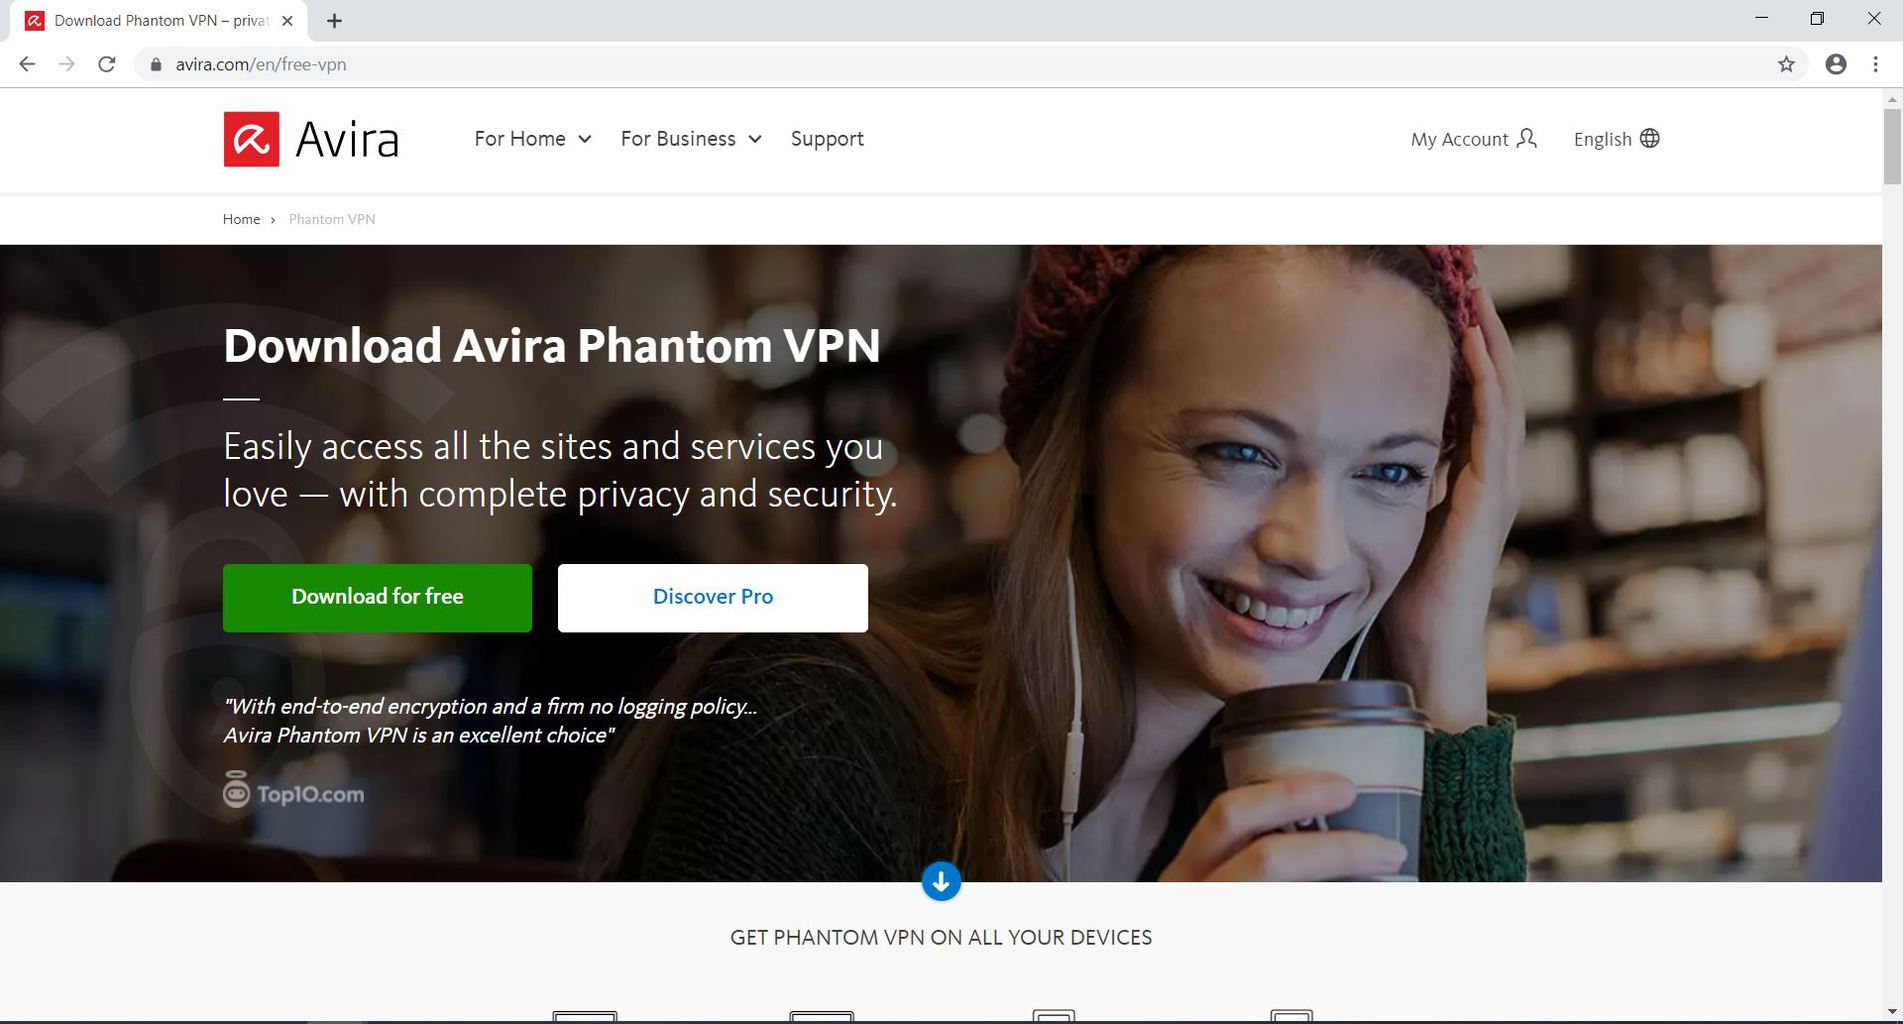 Avira Phantom VPN download page